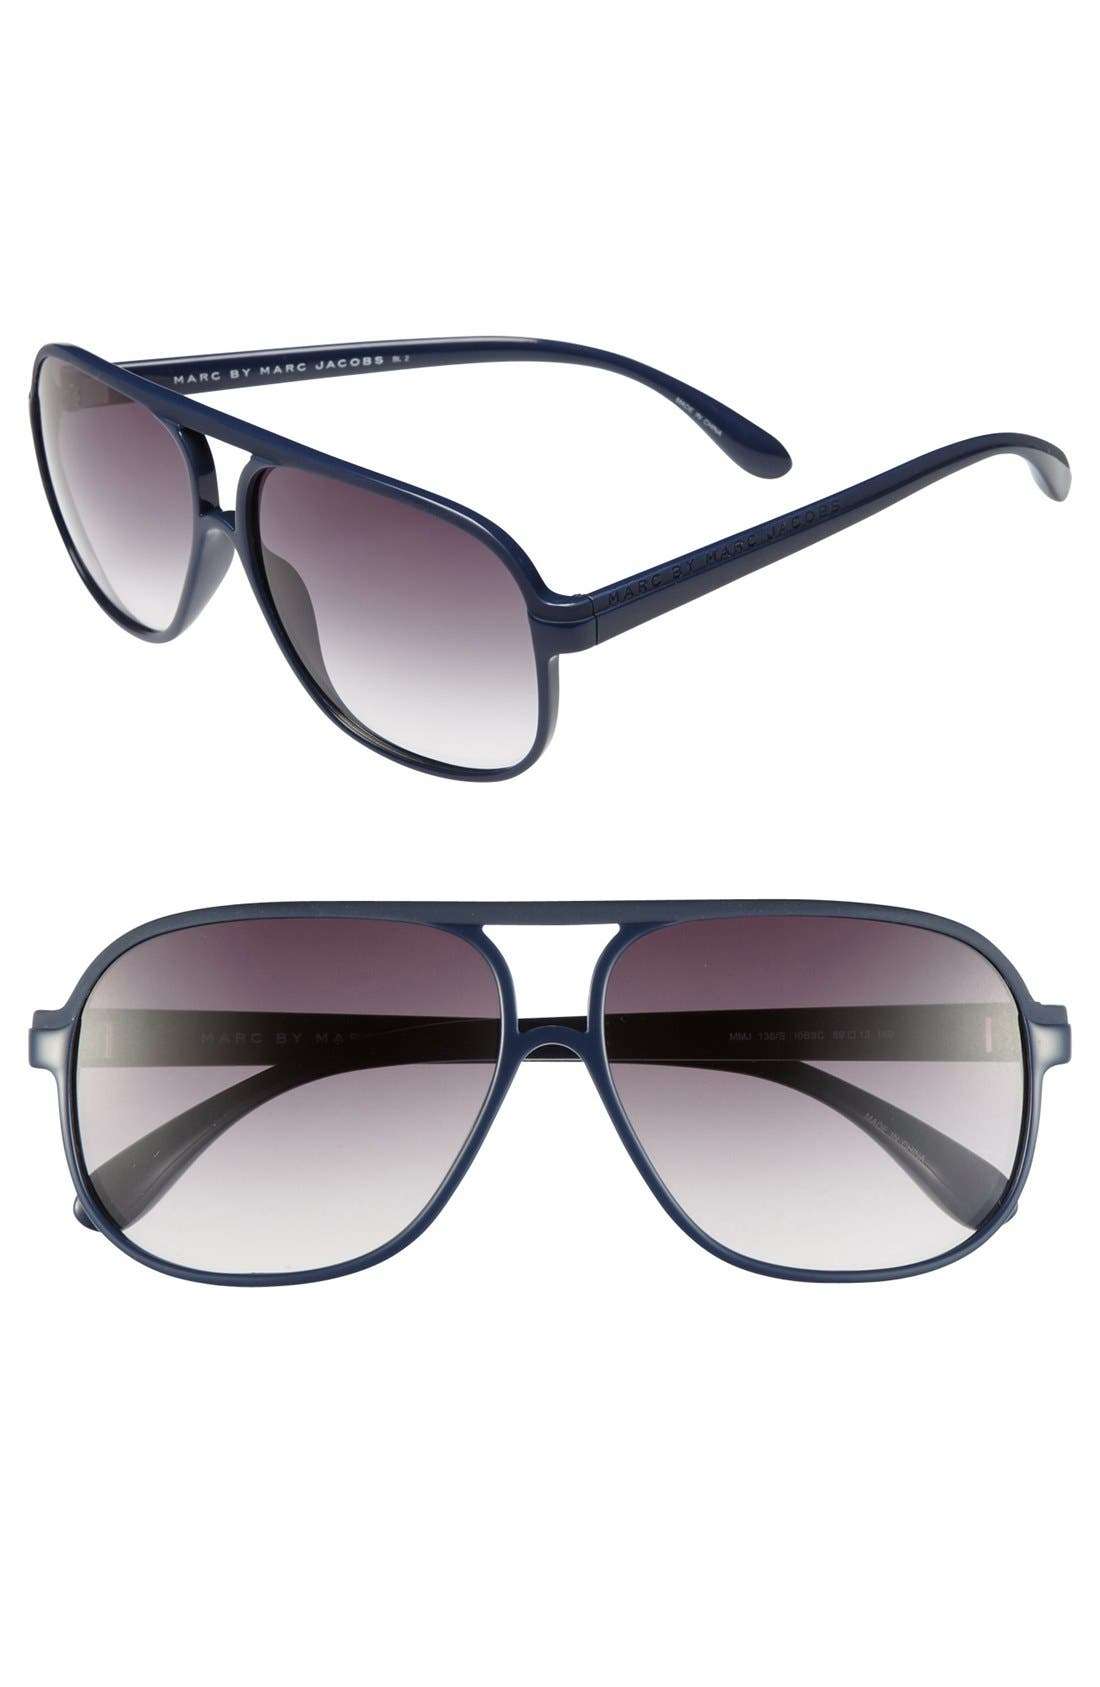 Main Image - MARC BY MARC JACOBS 59mm Sunglasses